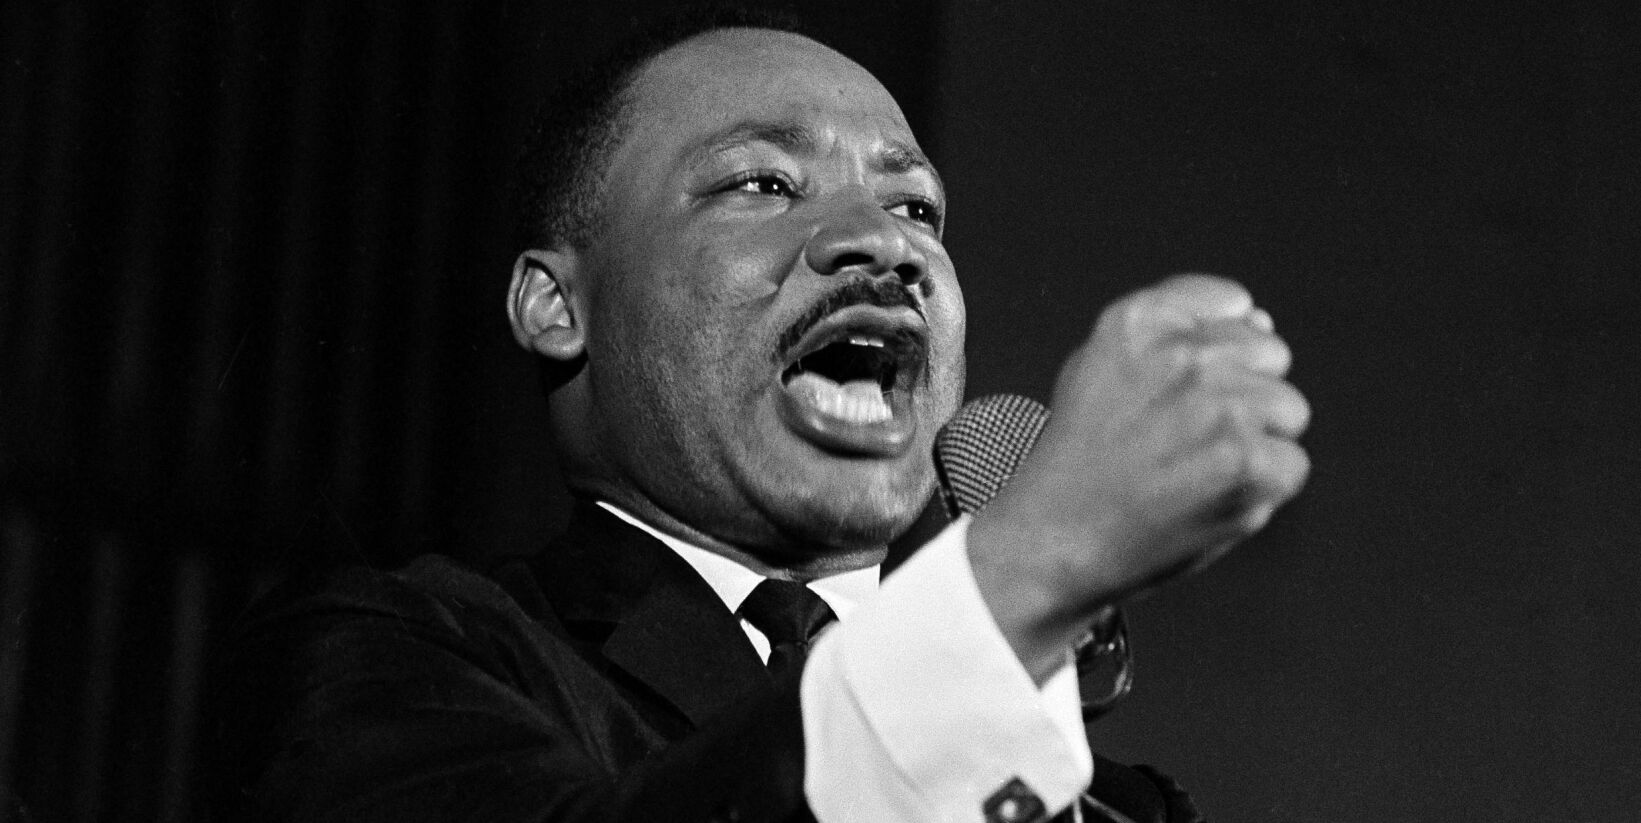 Dr. Martin Luther King Jr. shakes his fist during a speech in Selma, Ala., Feb. 12, 1965. King was engaged in a battle with Sheriff Jim Clark over voting rights and voter registration in Selma. (AP Photo/Horace Cort)